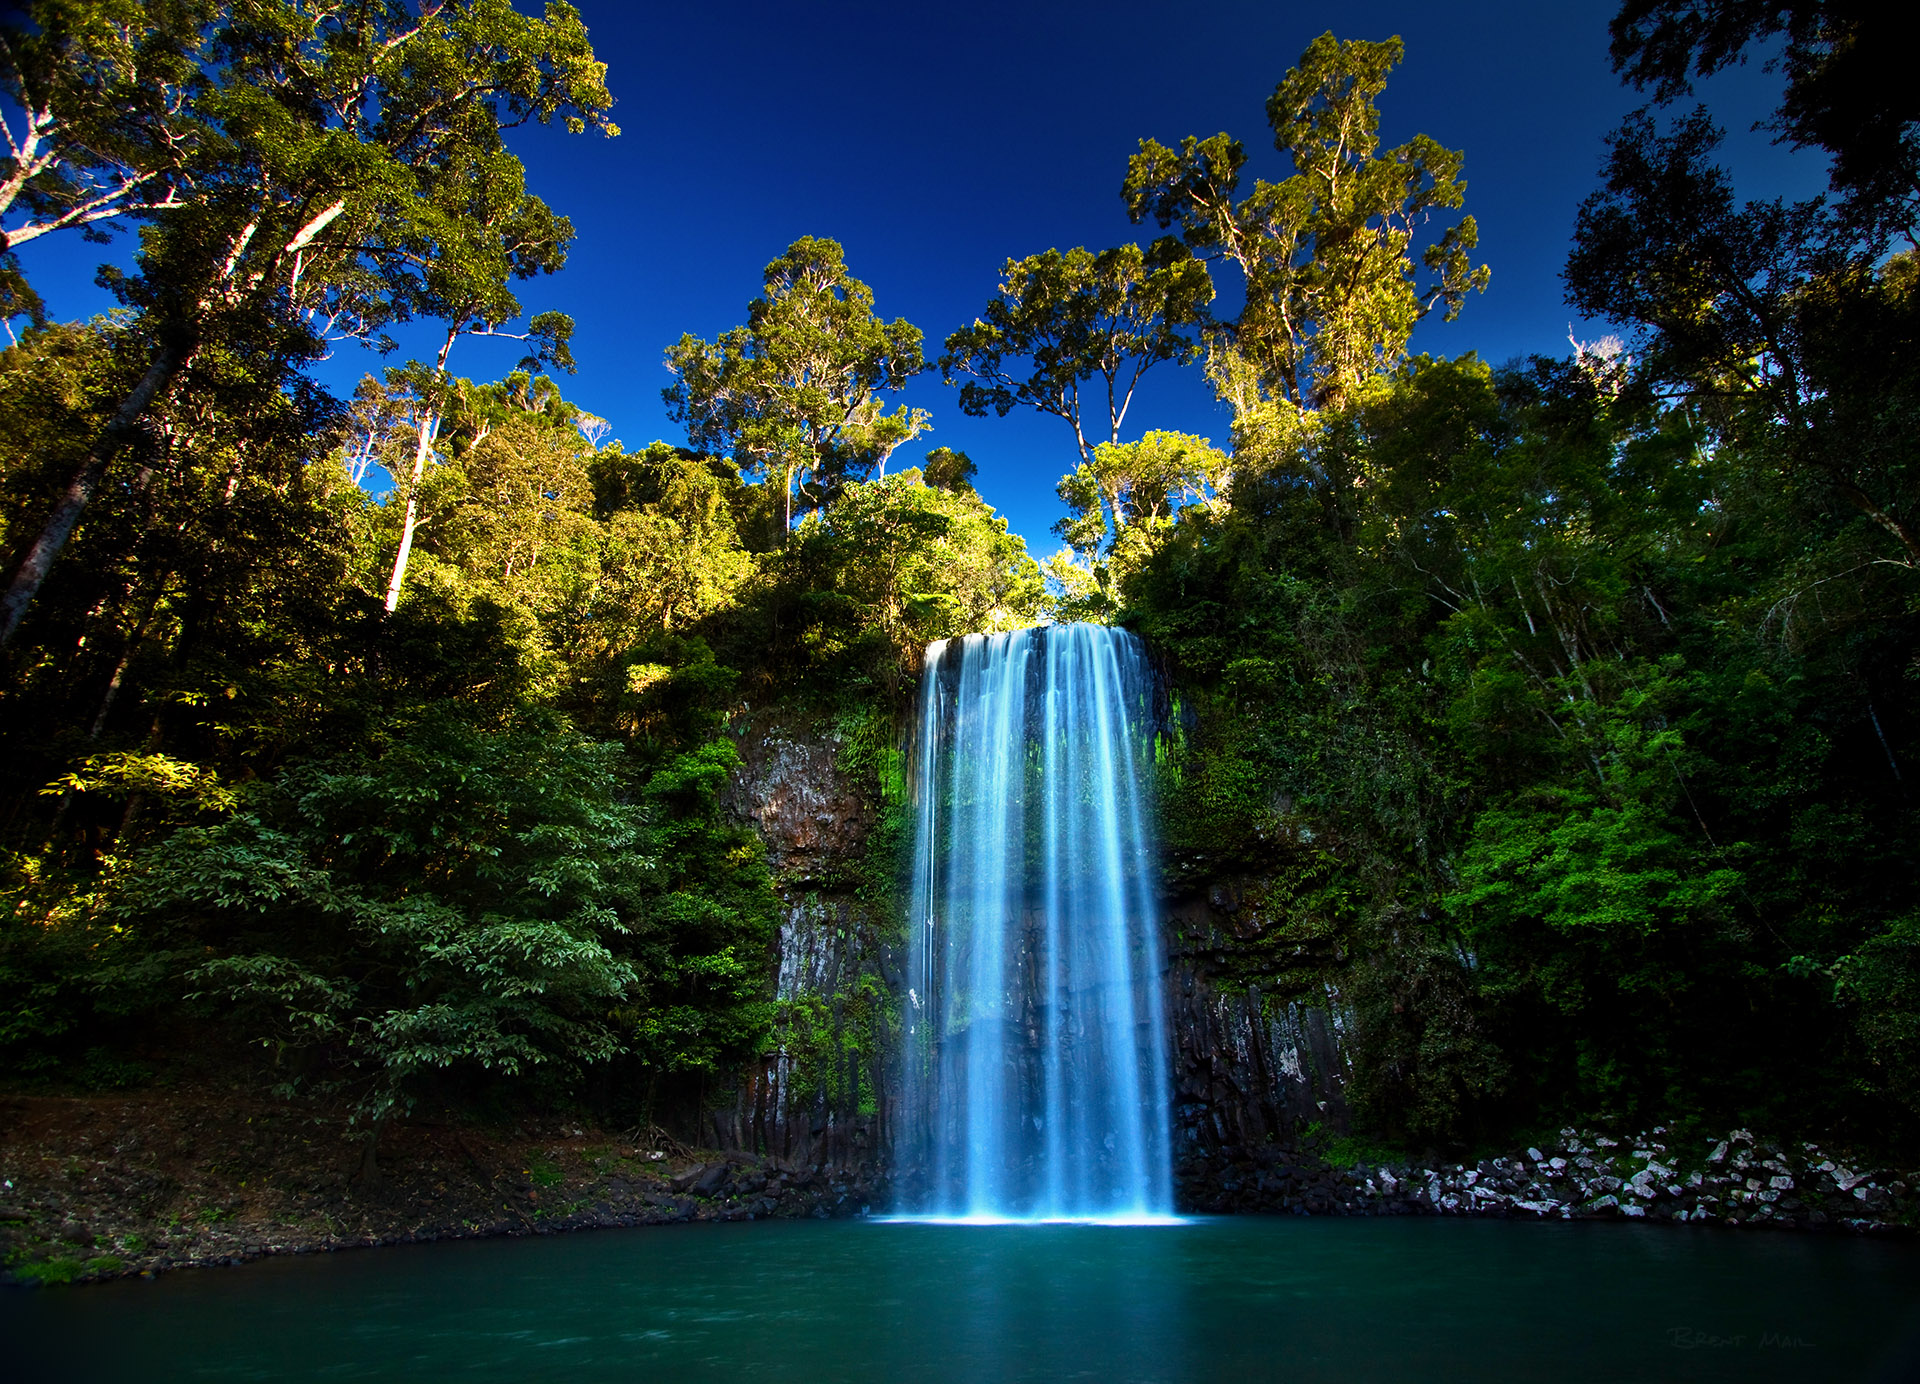 Falling Water Live Wallpaper Tropical Queensland Brent Mail Photography